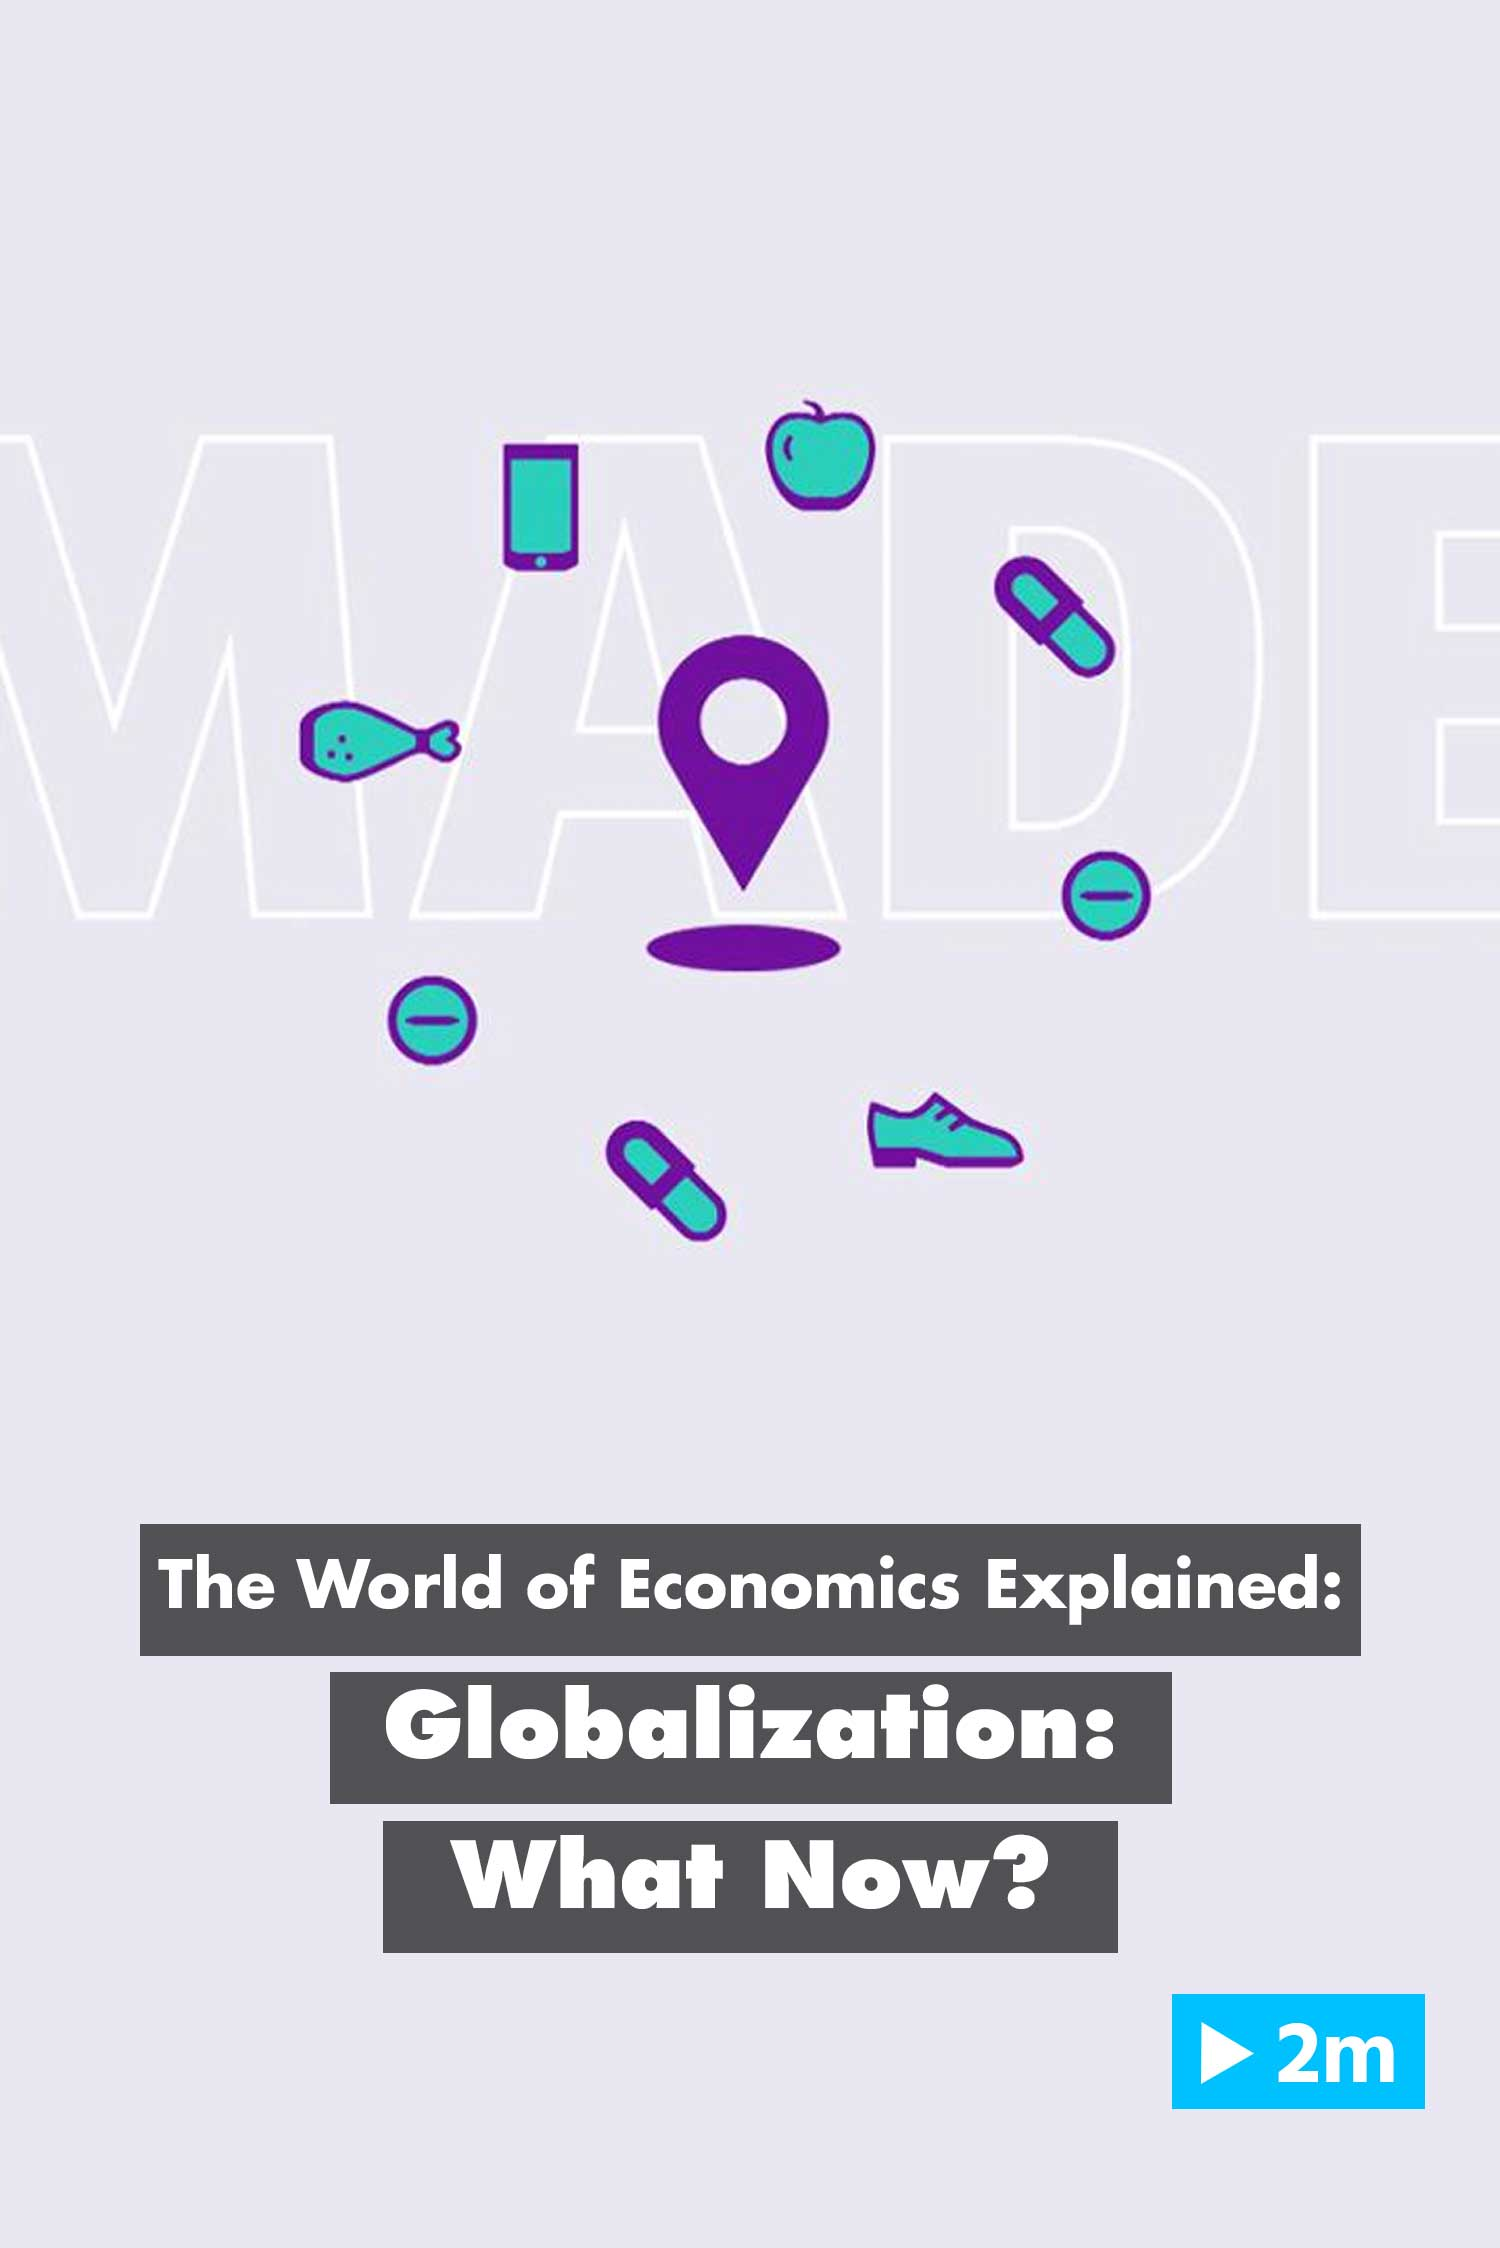 The World of Economics Explained: Globalization - What Now?